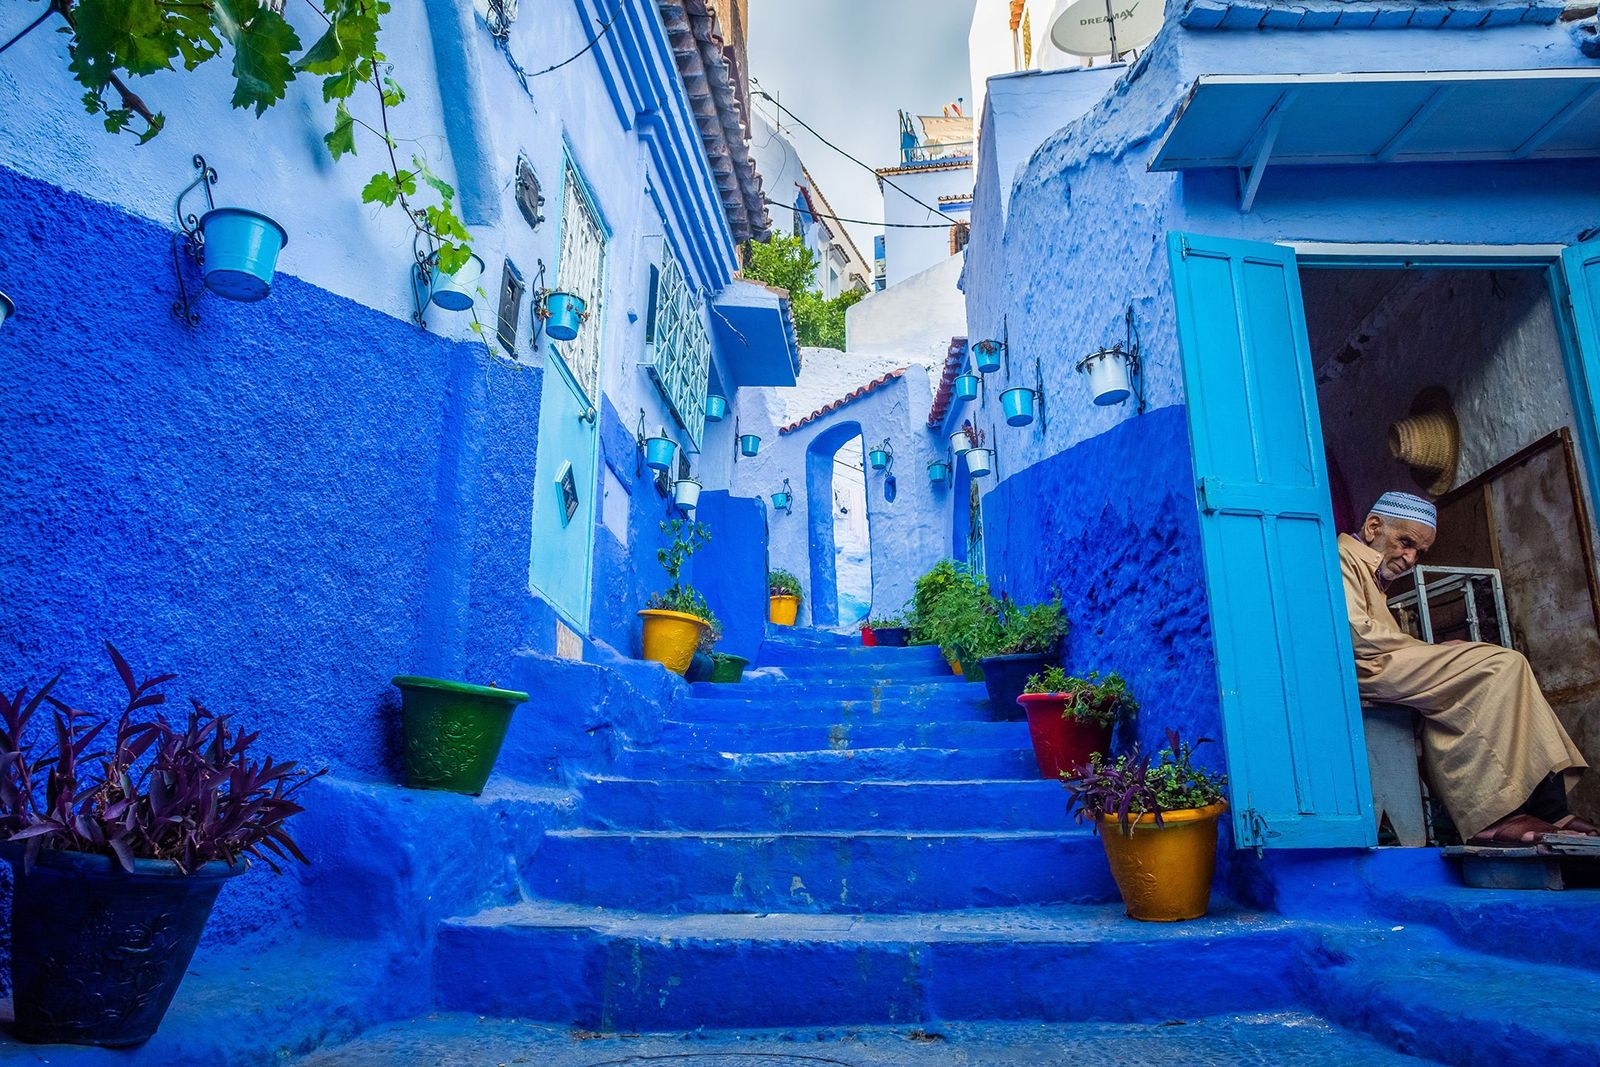 25 magical photos of Morocco